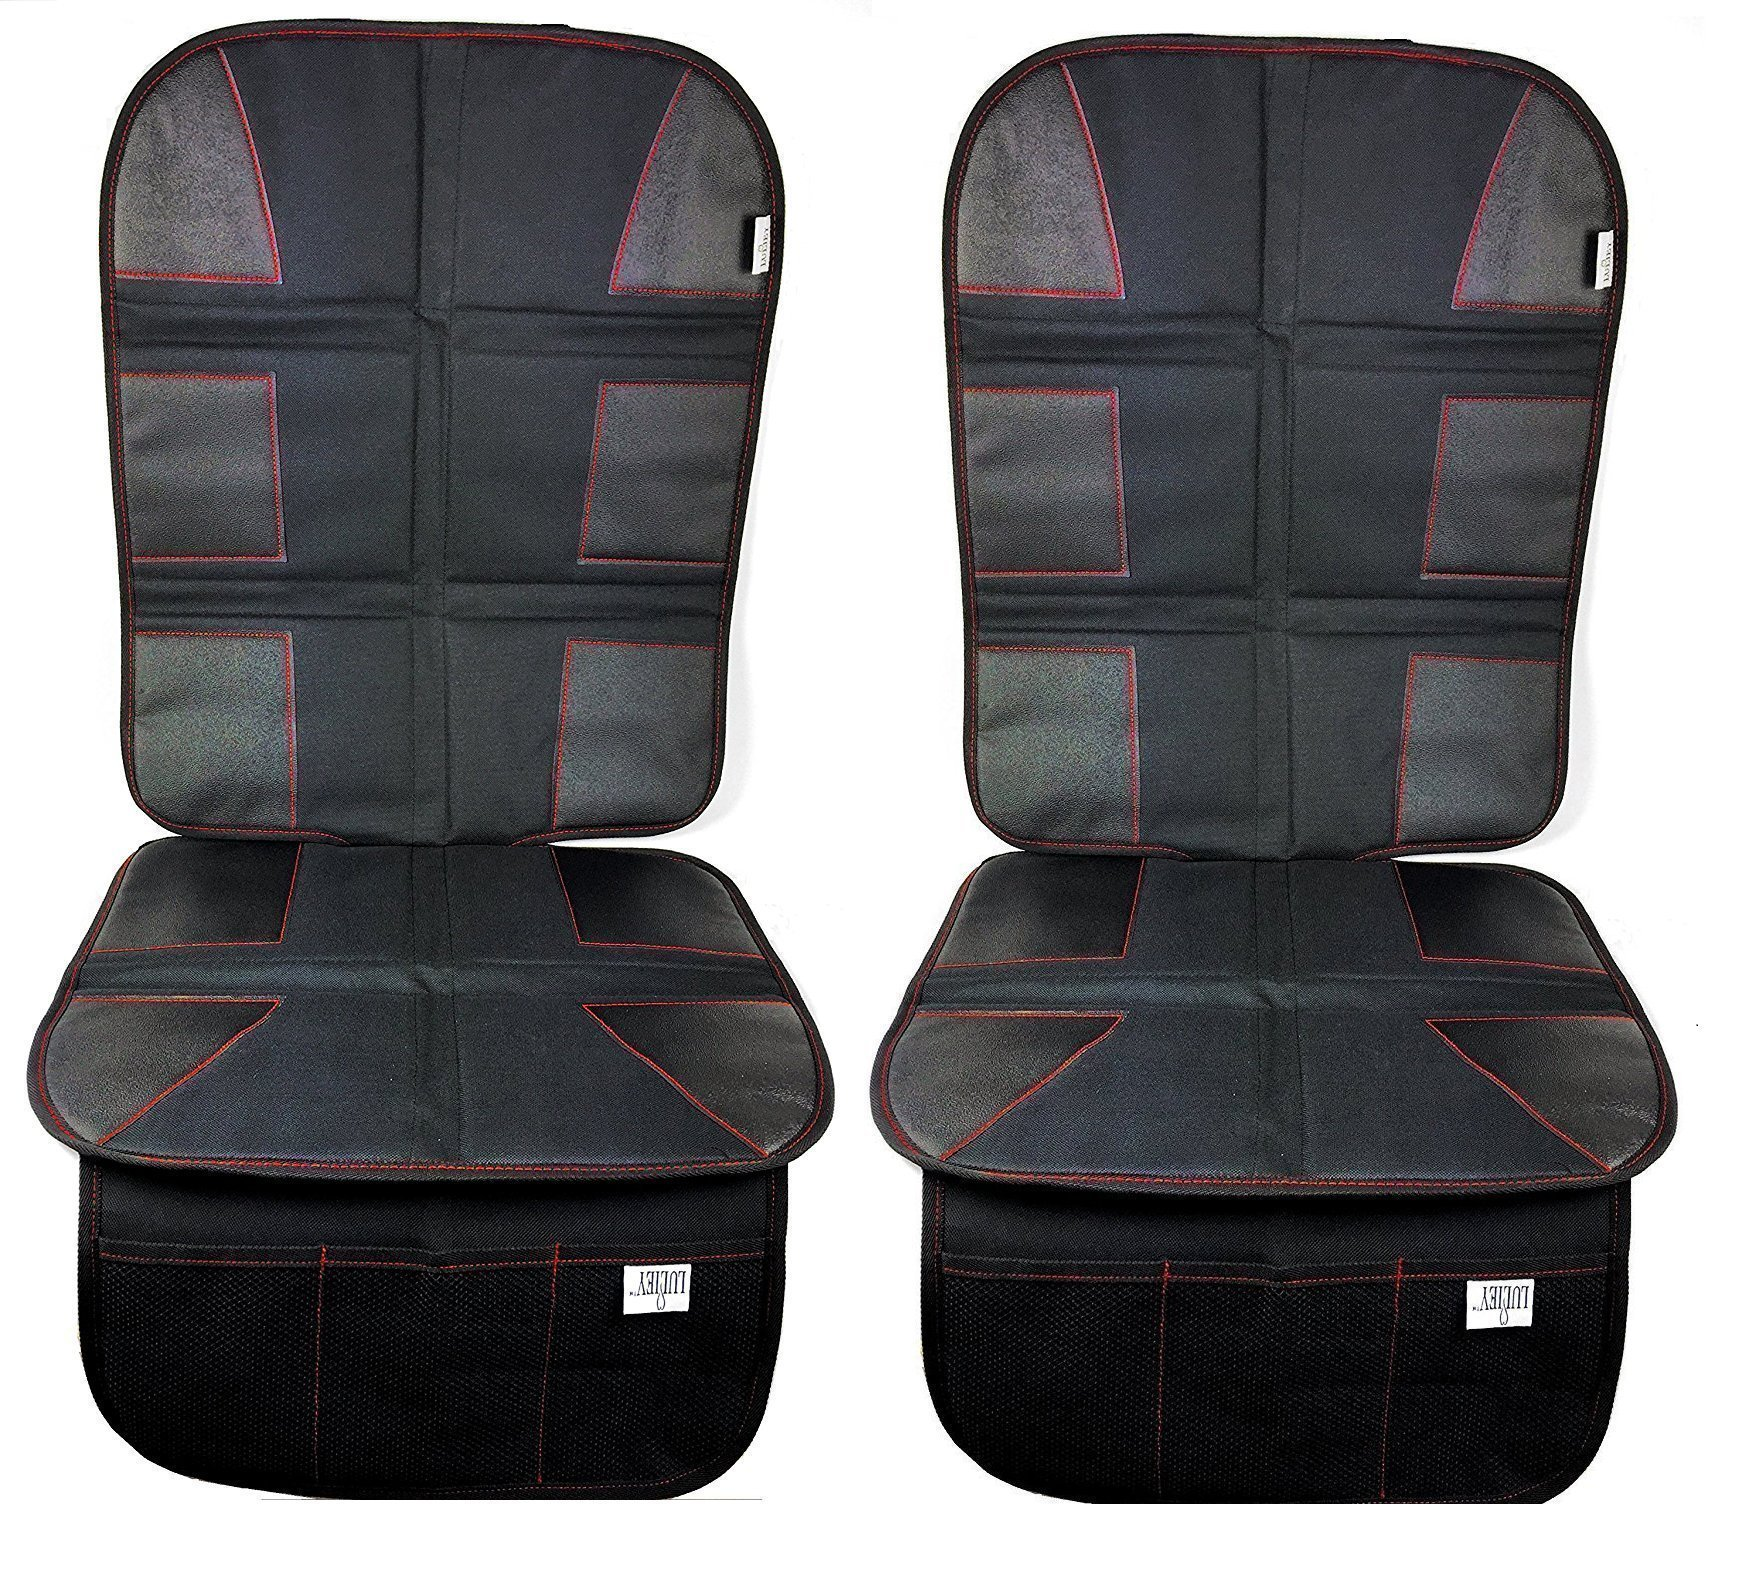 Luliey Car Seat Protector 2 Pack CarSeat Cover Pad Child Baby Seats Dog Mats